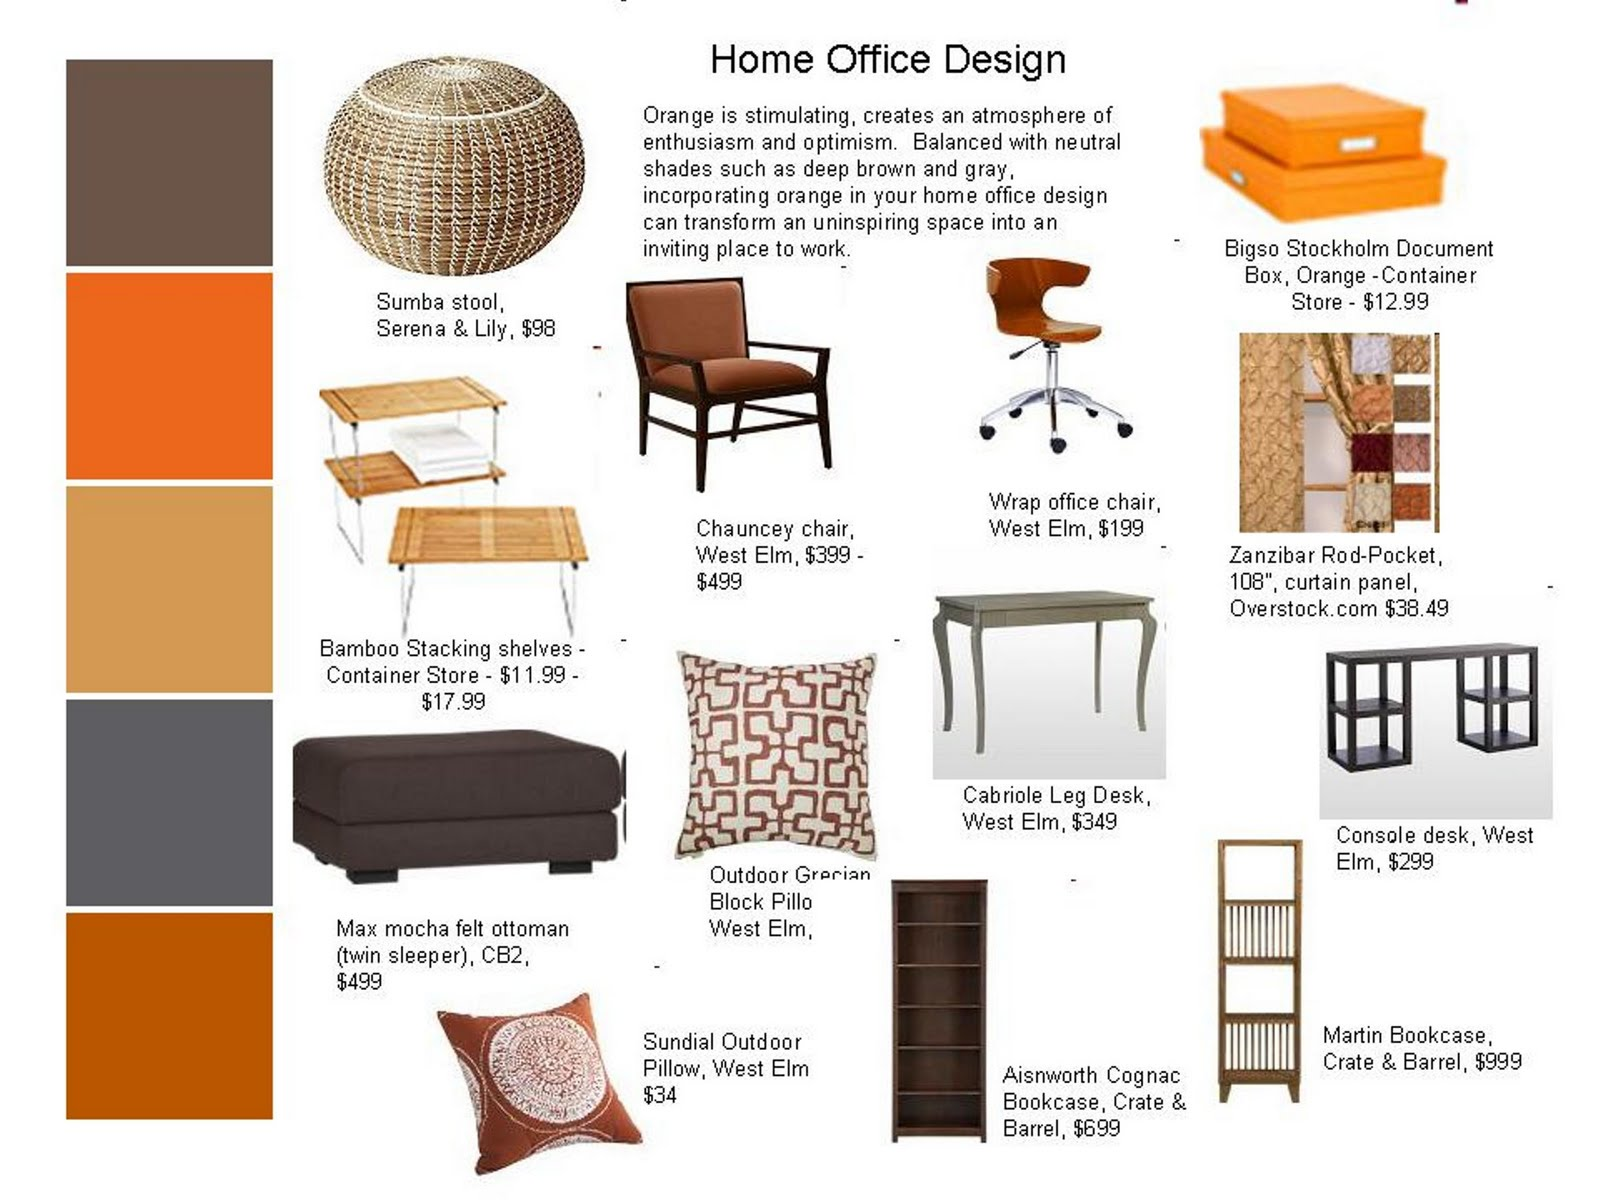 Designersu0027 Corner: Home Office Design With A Pop Of Color